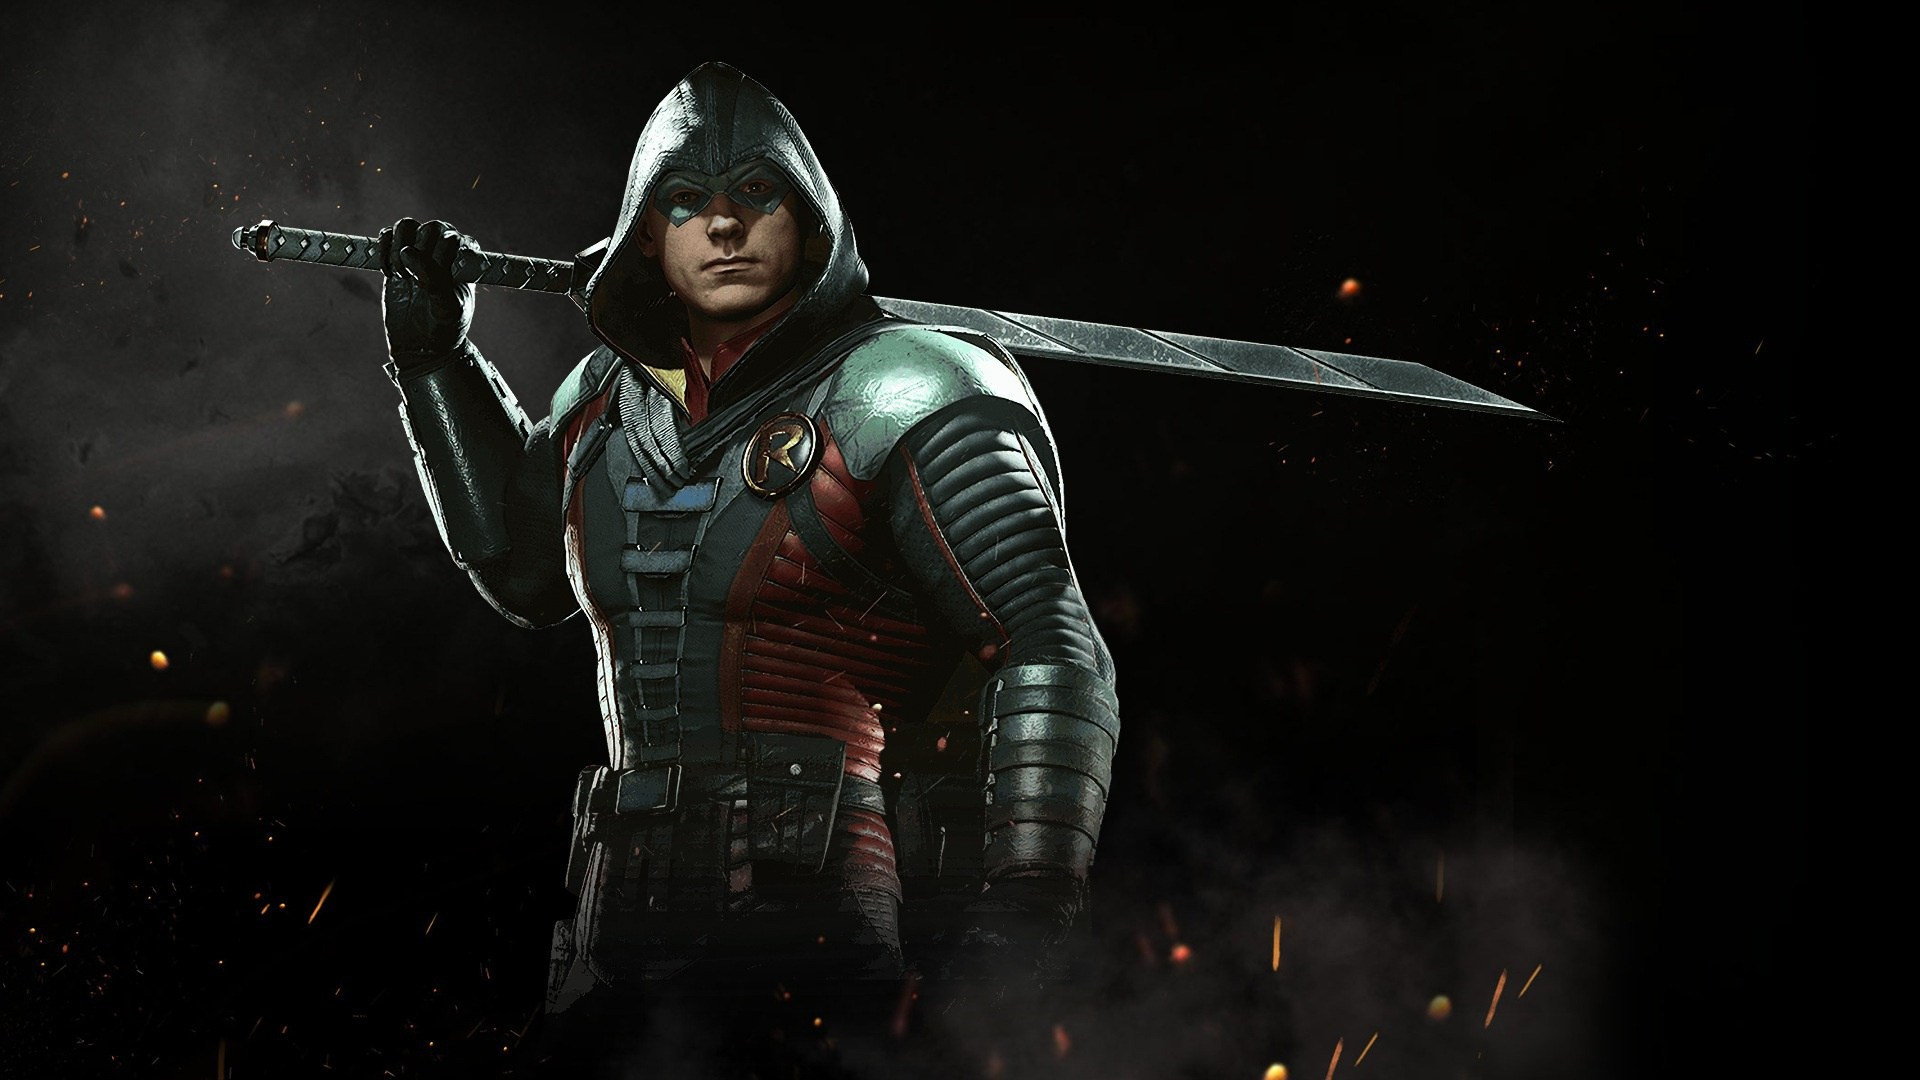 Injustice 2 Robin 2345322 Hd Wallpaper Backgrounds